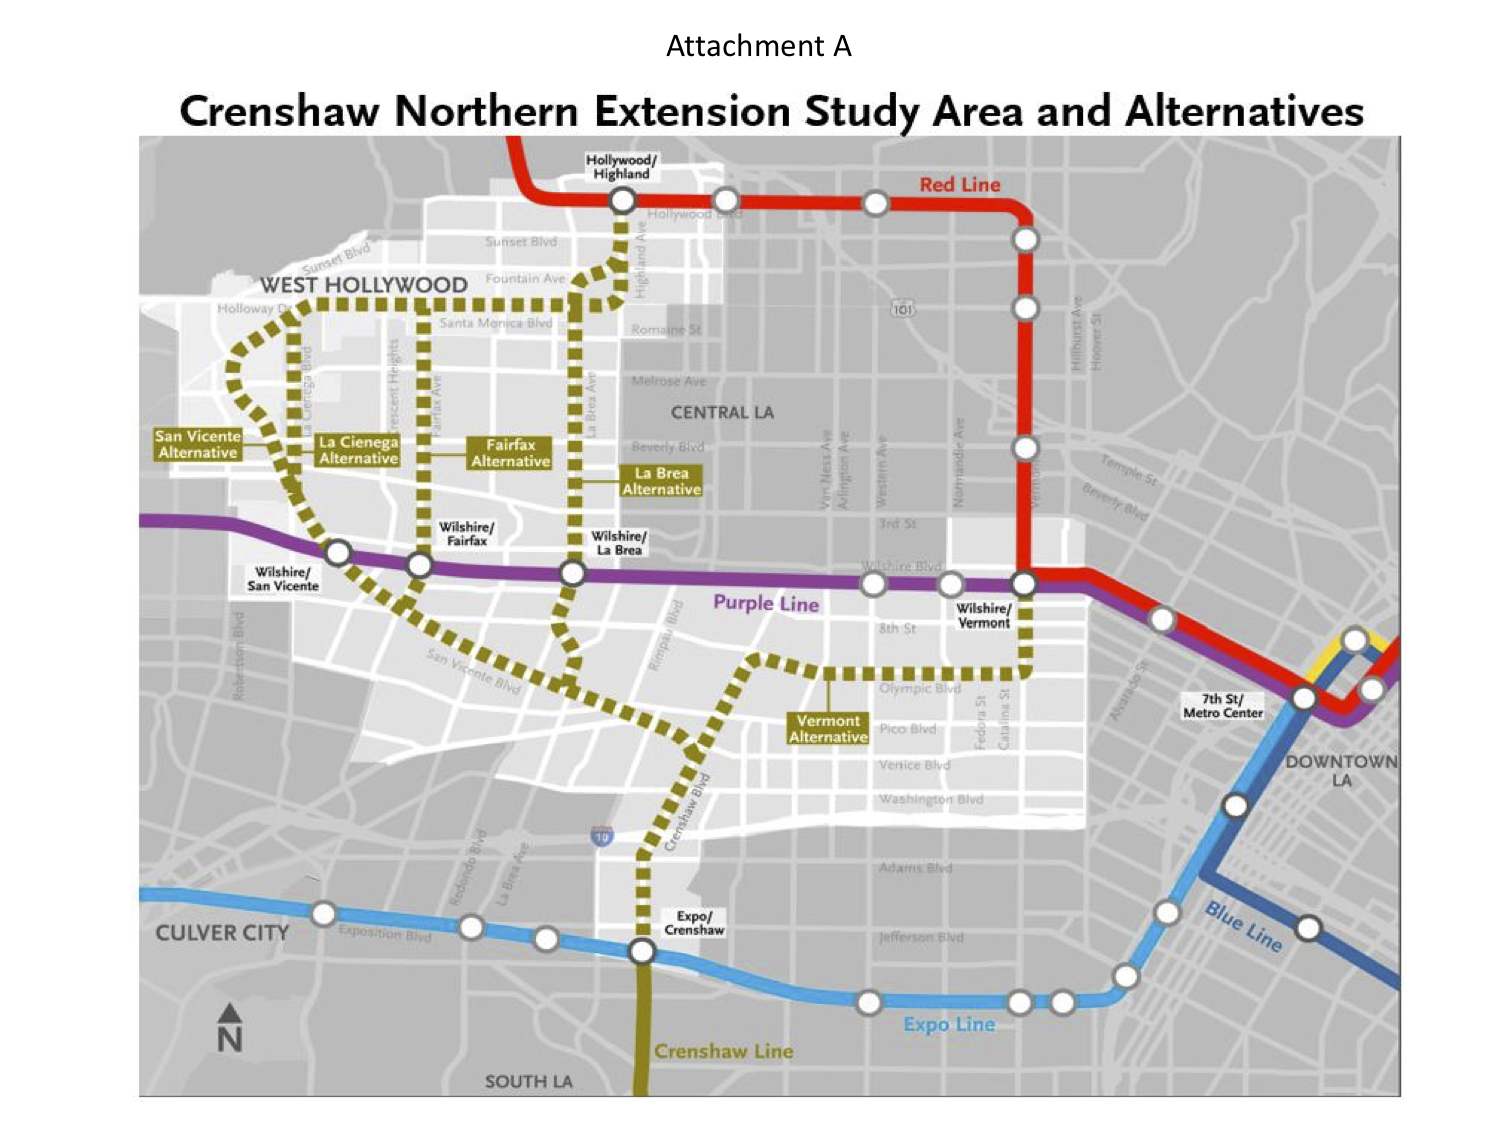 Nyc Subway Map 7 Train Extension.Feasibility Study Looks At Possible Routes For Crenshaw North Extension